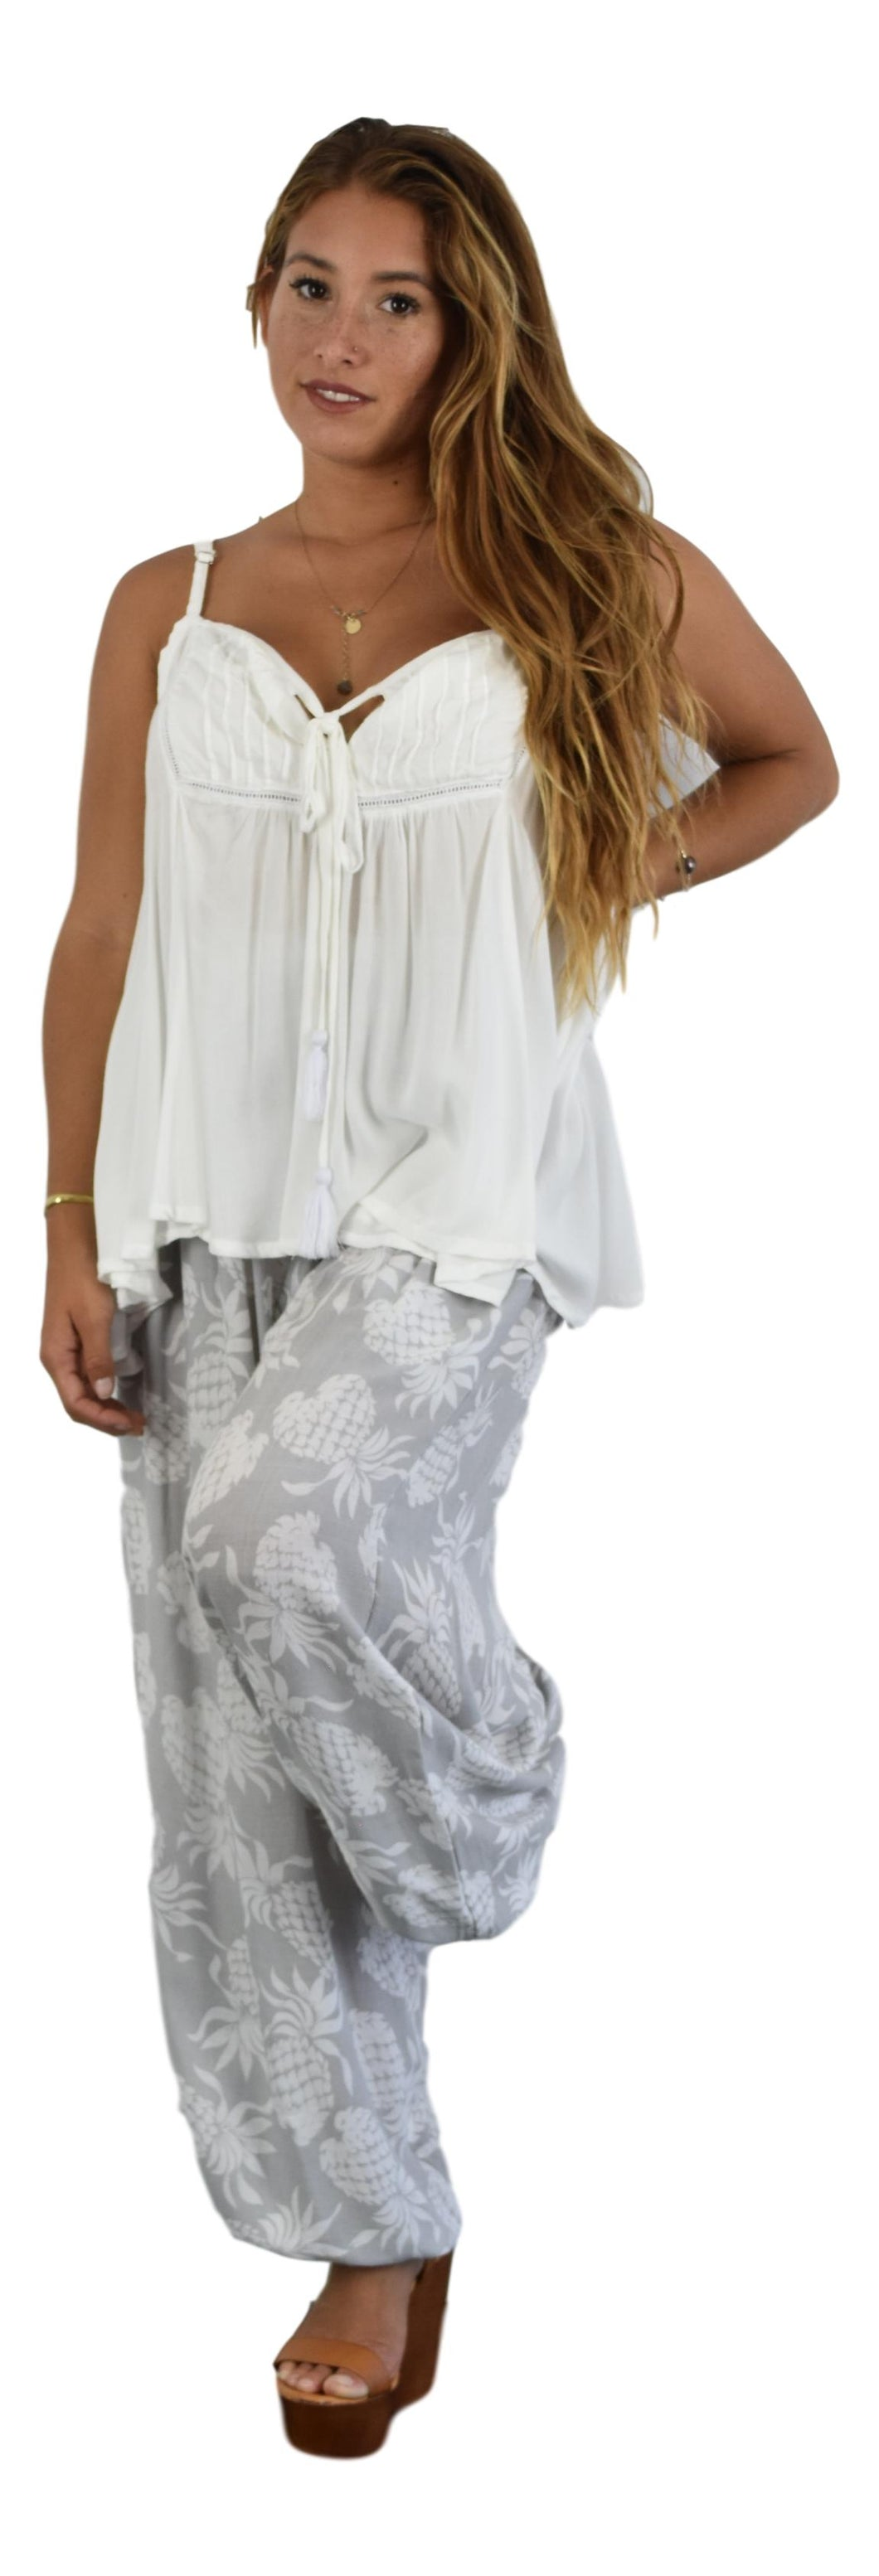 Secret Beach - Paia Top - White  - Chiffon Rayon with tape and tassels on tie